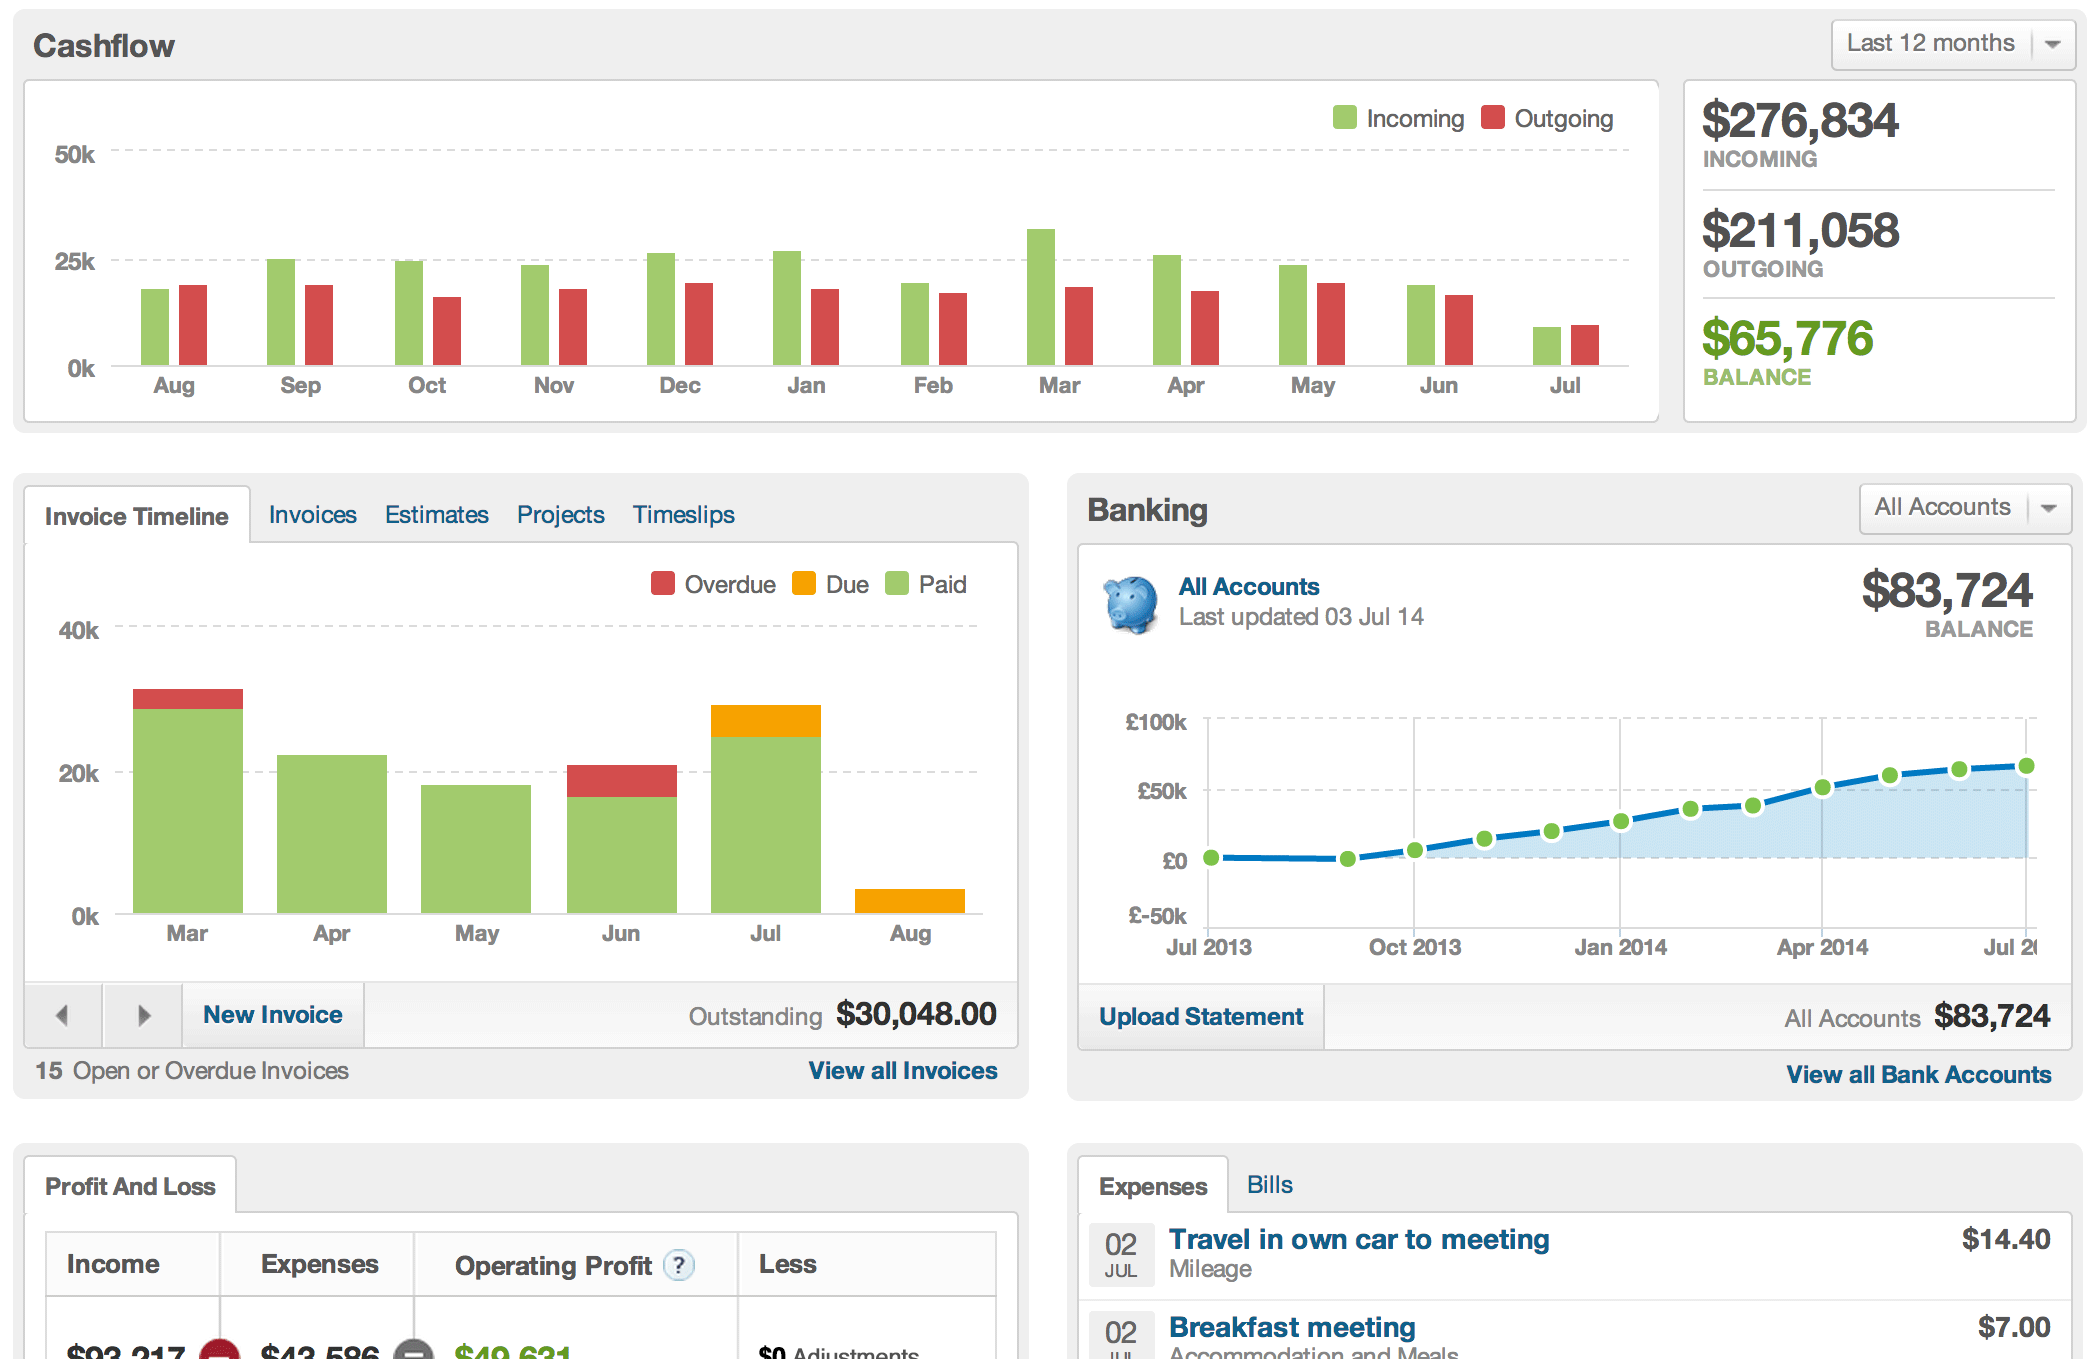 Bookkeeping software dashboard view